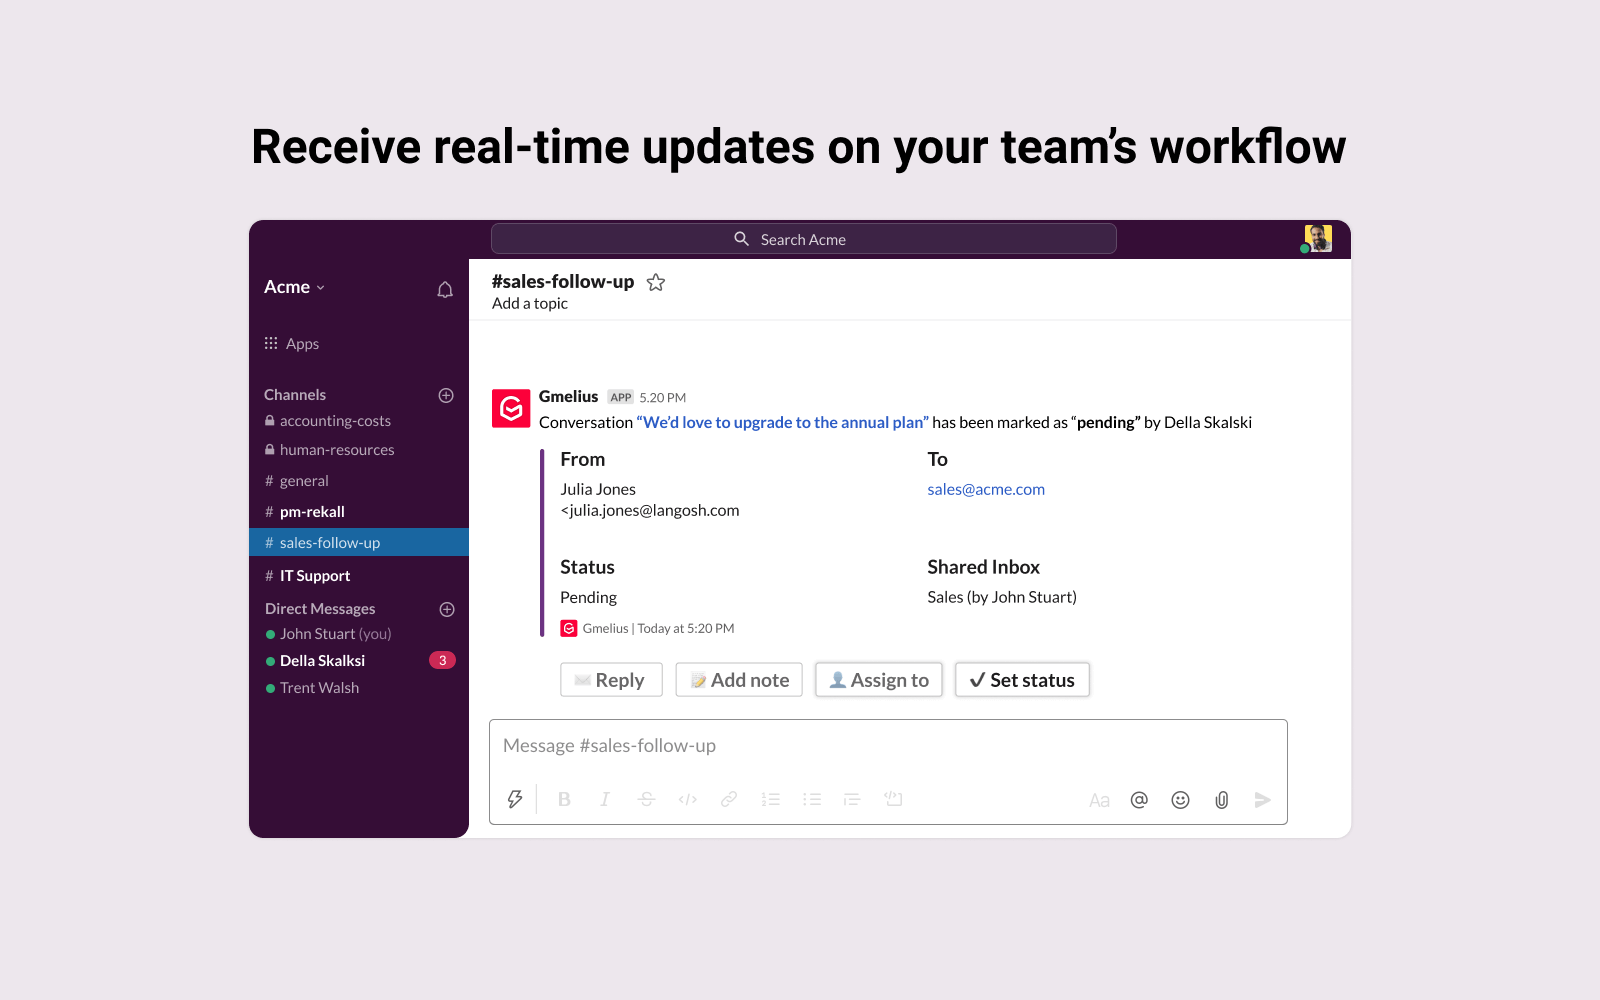 Receive real-time updates on your team's workflow